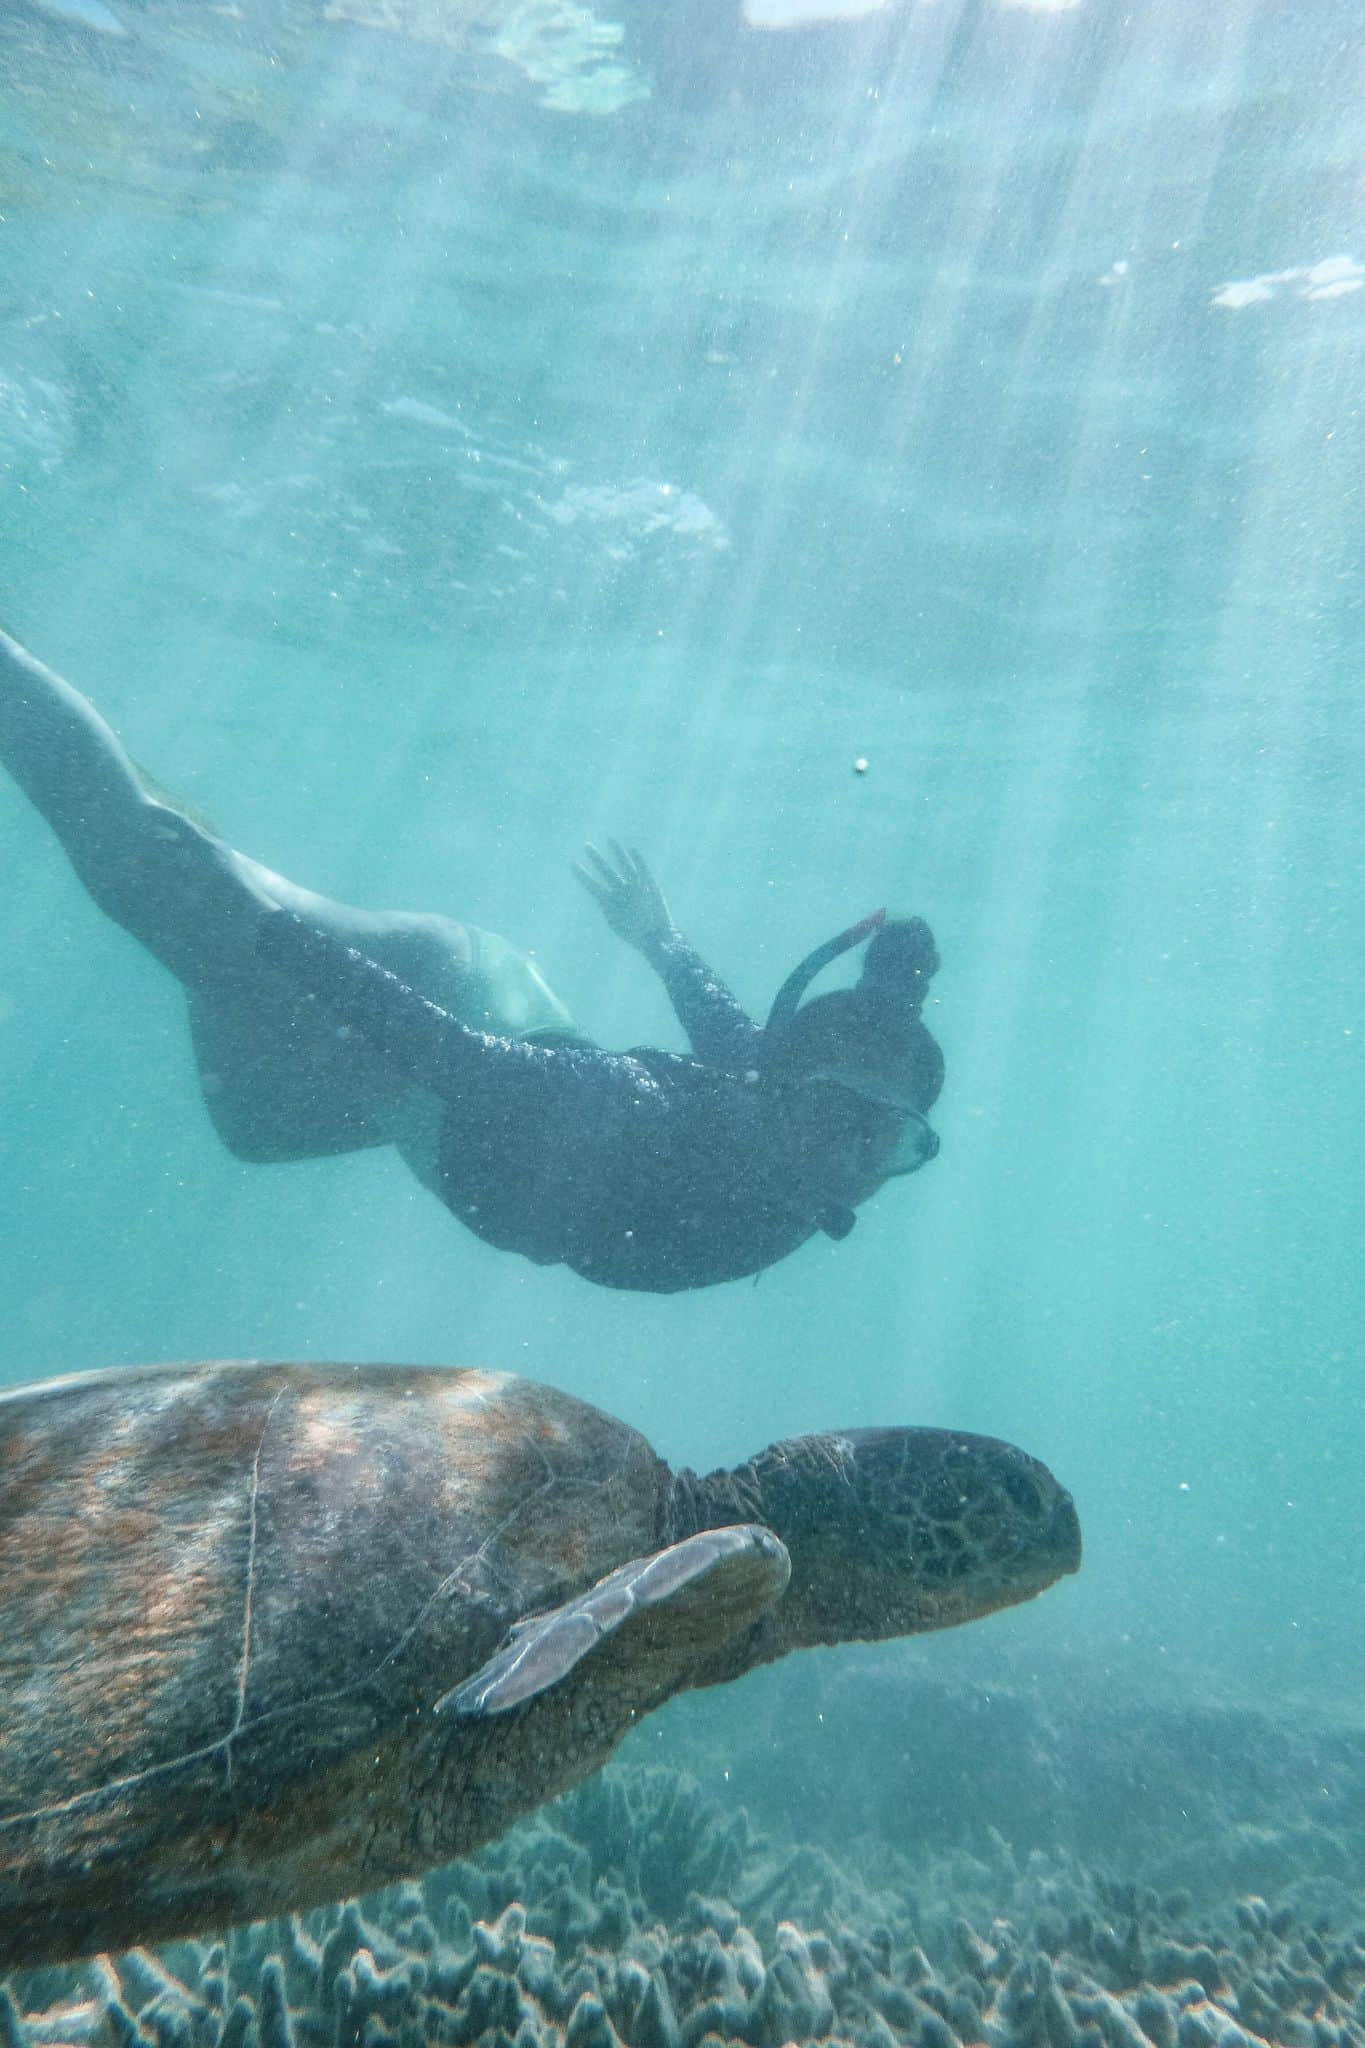 Swimming and snorkelling with a Green Sea Turtle on the Great Barrier Reef in Queensland #swimmingwithturtles #heronisland #greatbarrierreef